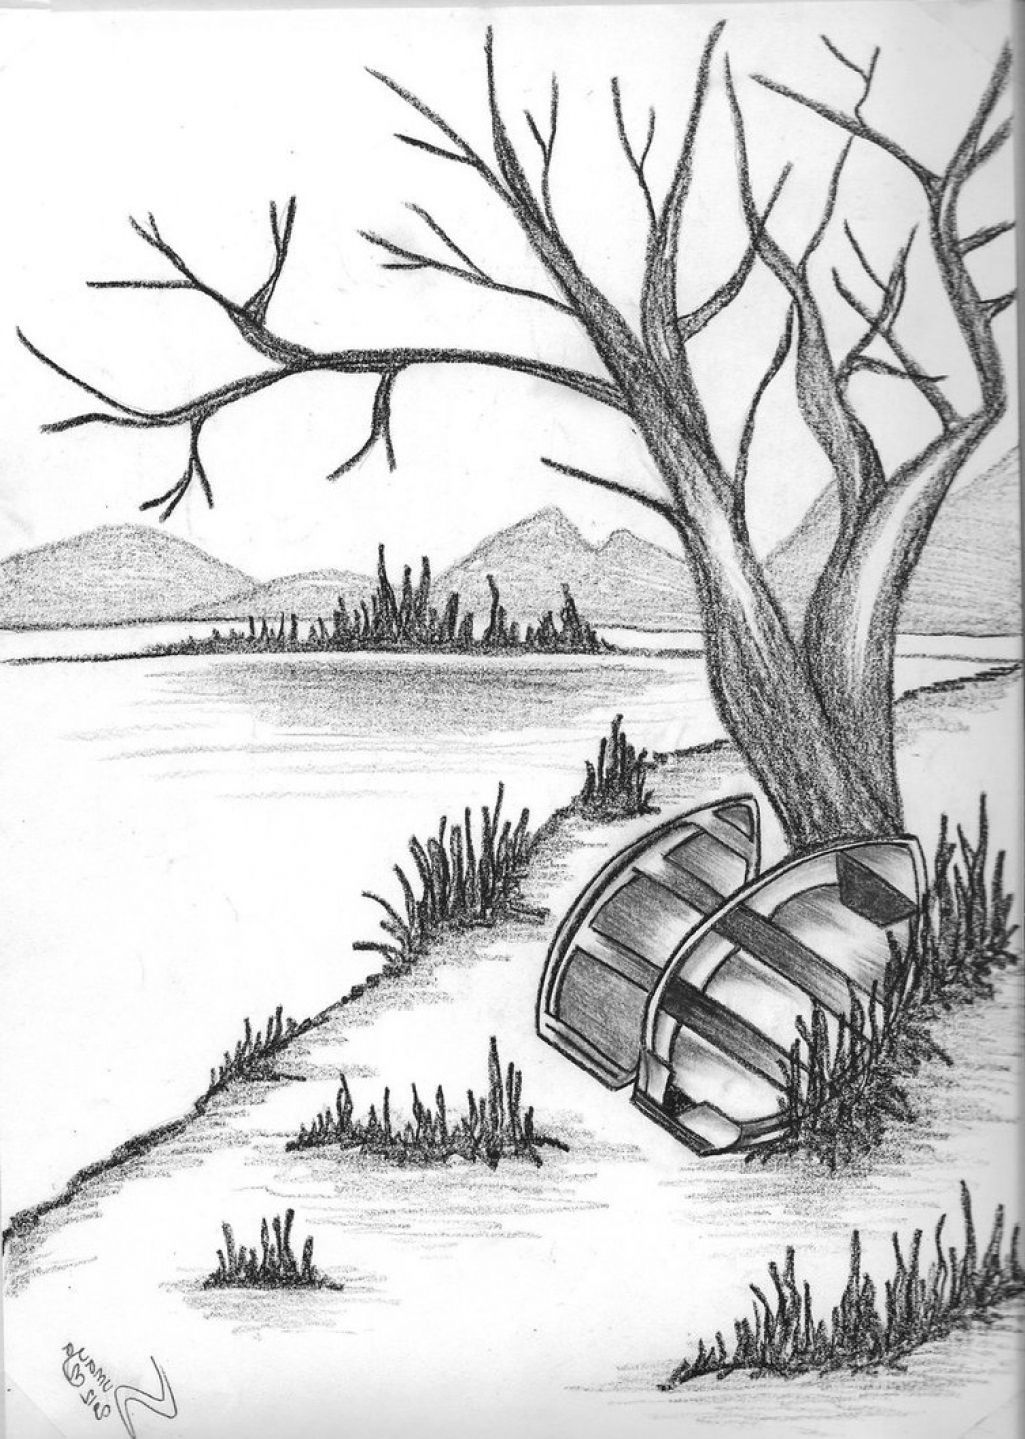 pencil drawing of natural scenery